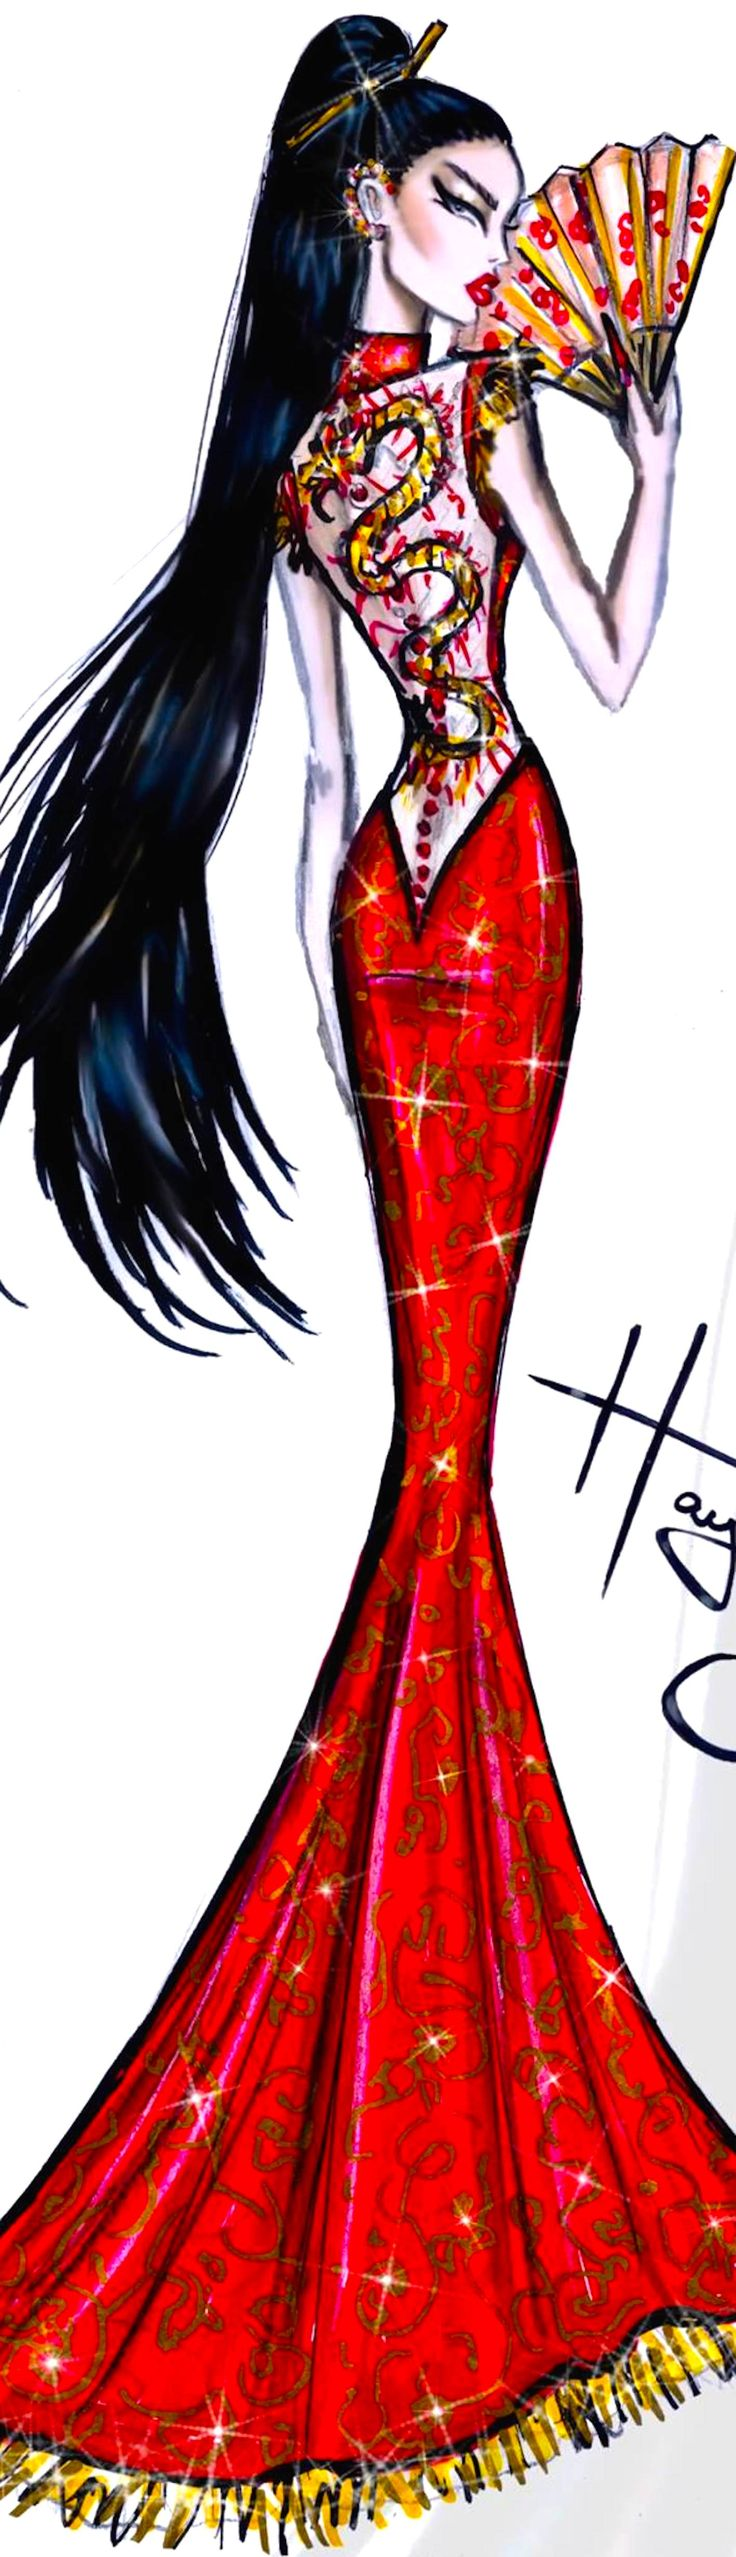 ~Hayden Williams Fashion Illustration | House of Beccaria#                                                                                                                                                      More